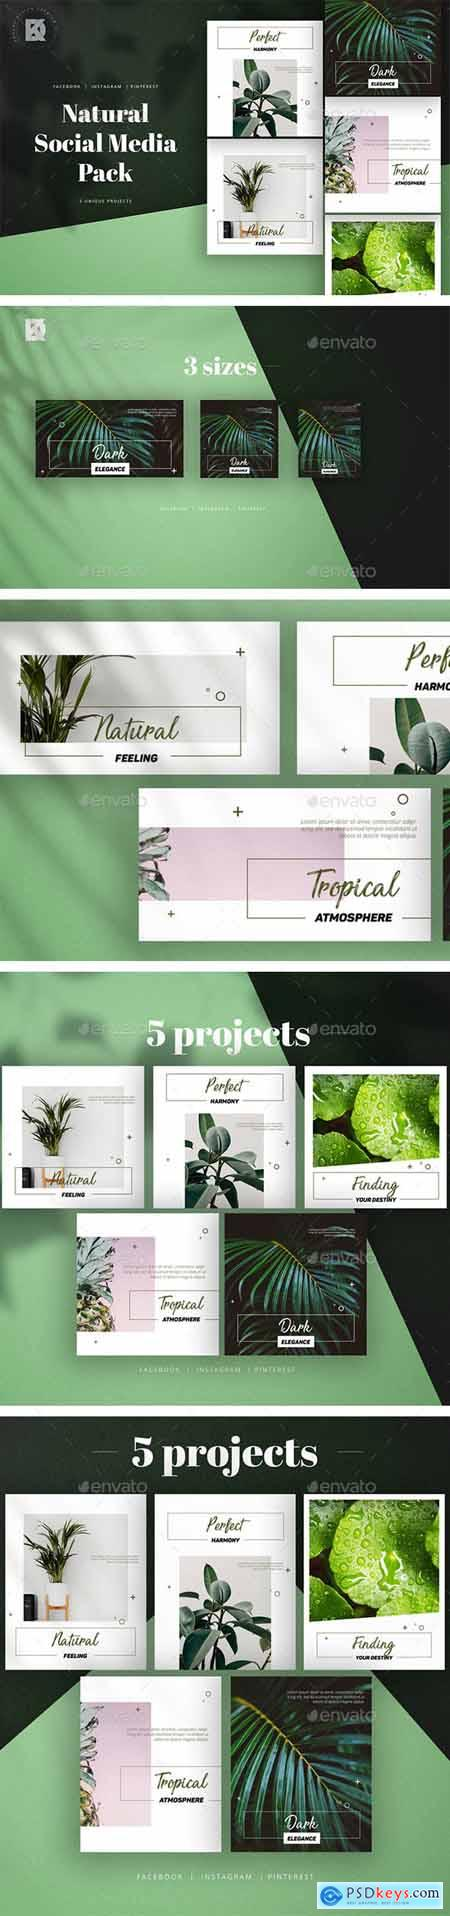 Graphicriver Natural Social Media Pack